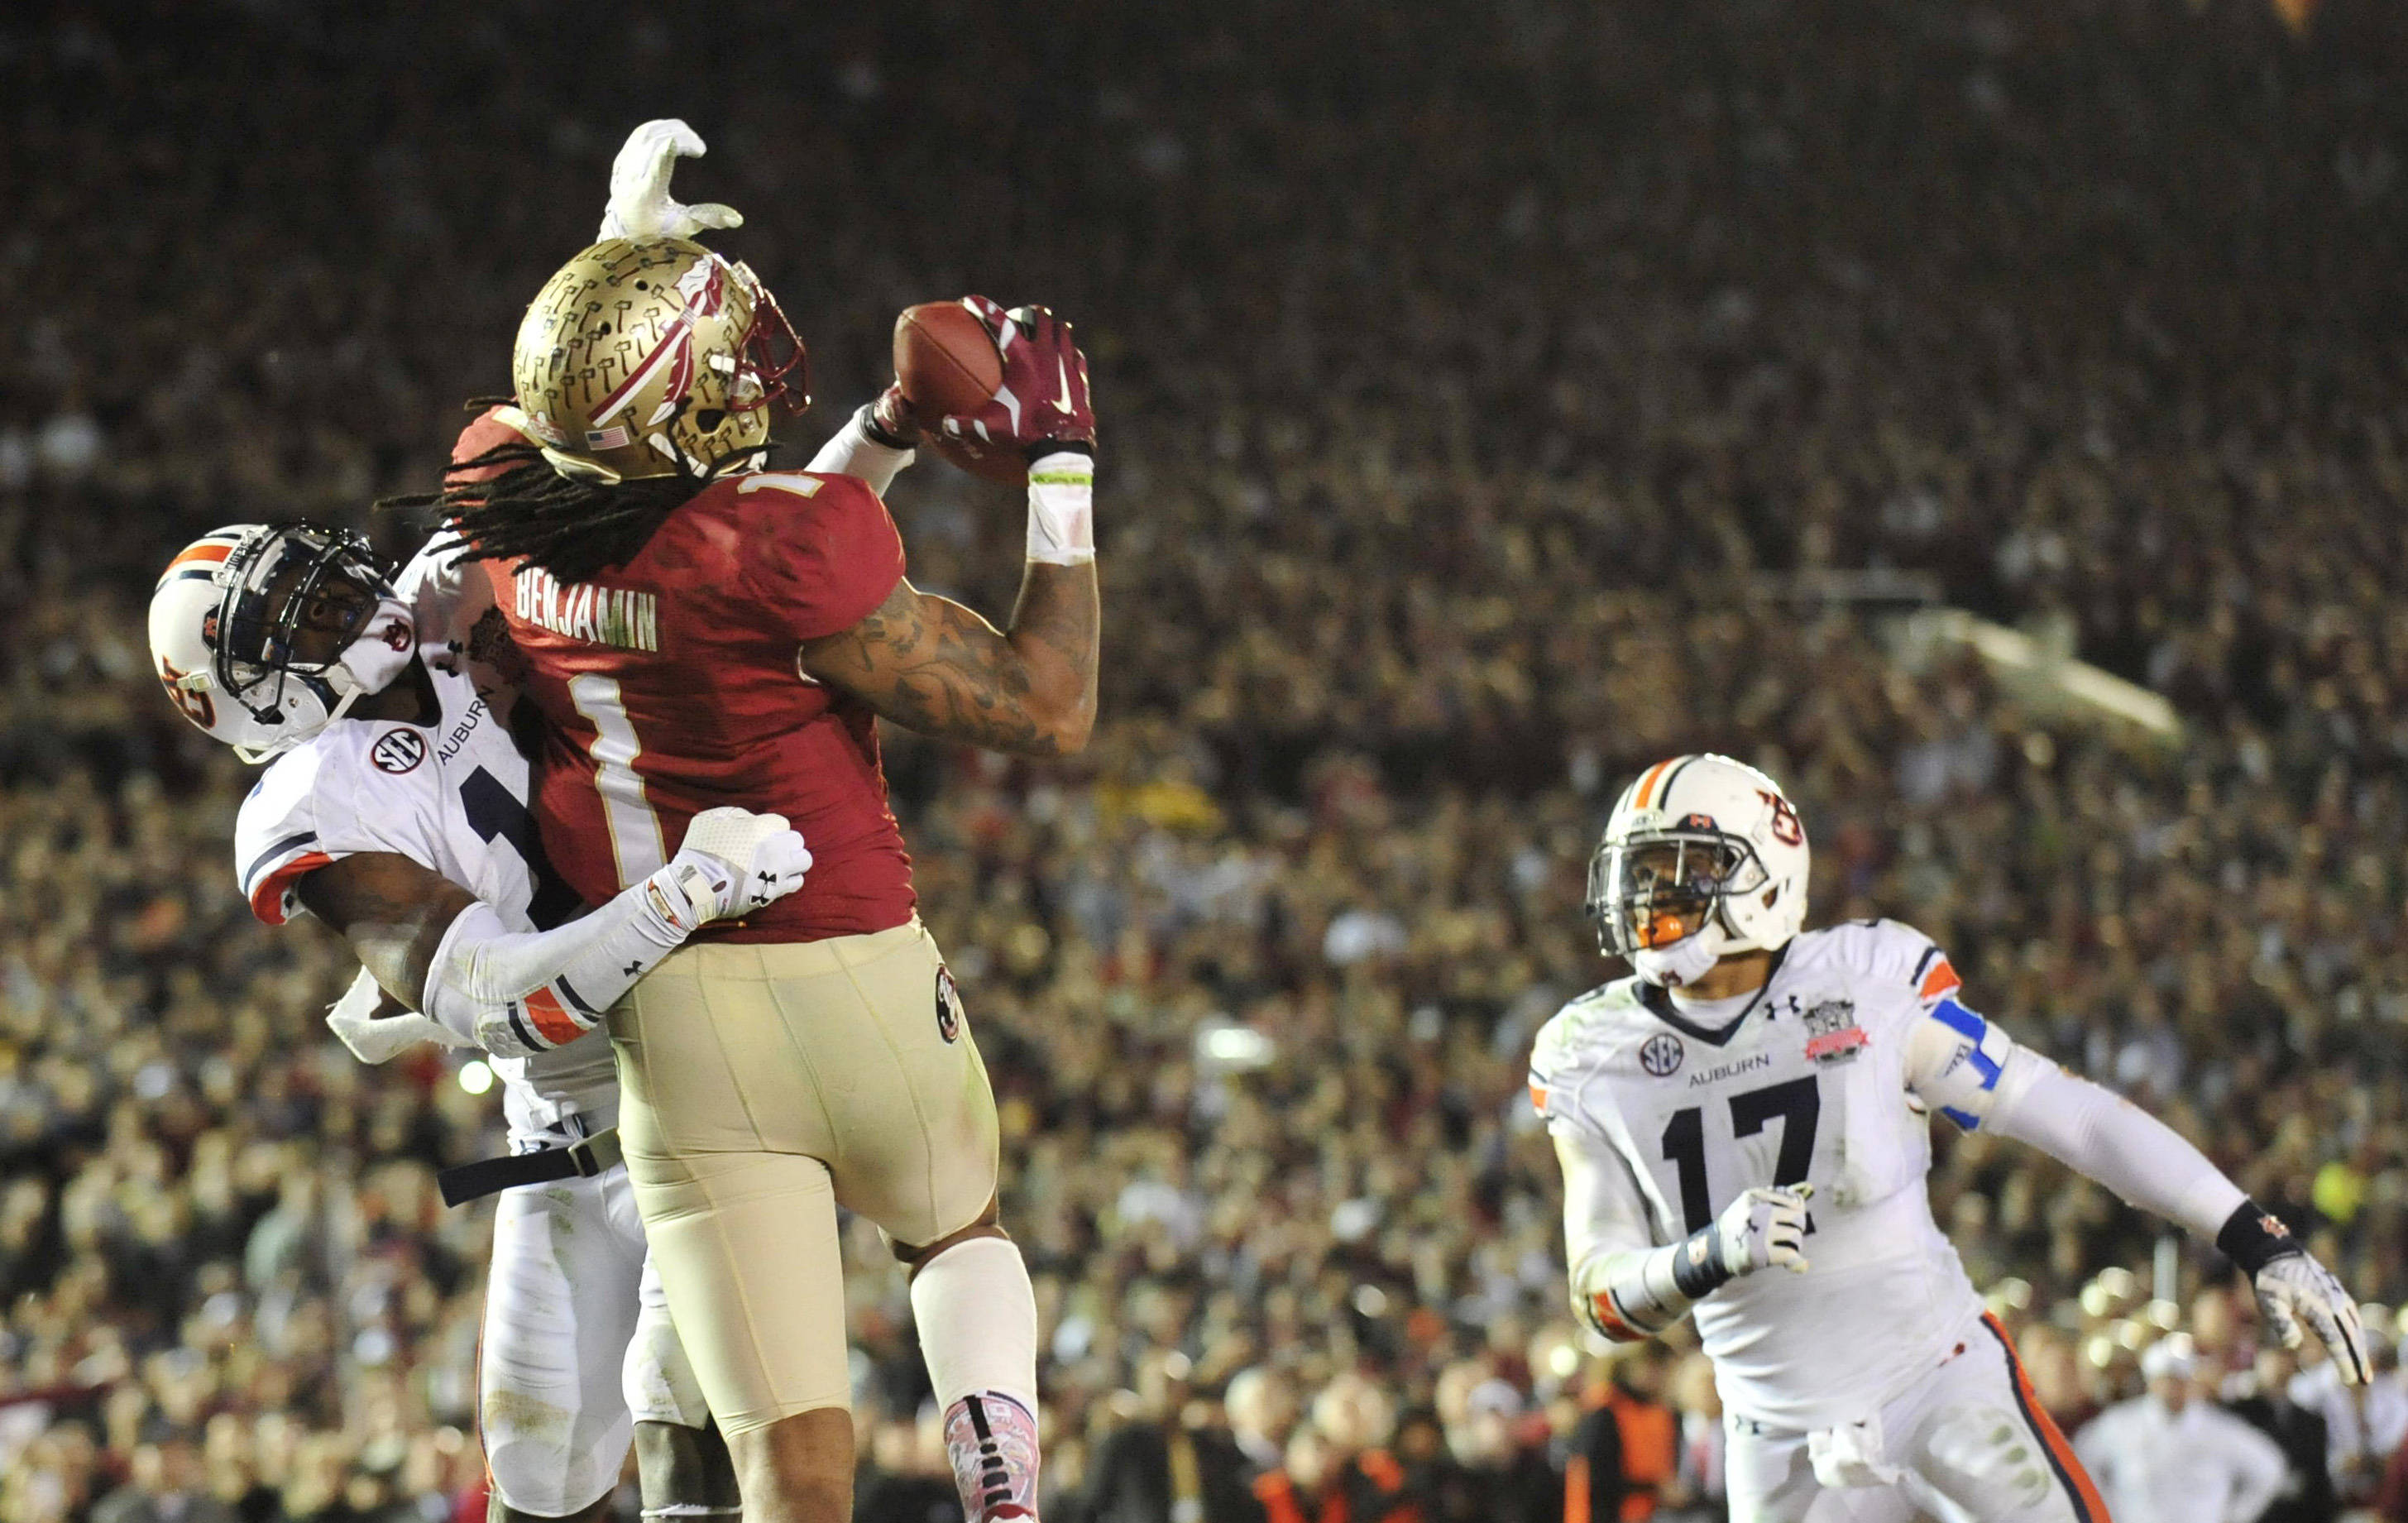 Jan 6, 2014; Pasadena, CA, USA; Florida State Seminoles wide receiver Kelvin Benjamin (1) catches a touchdown pass ahead of Auburn Tigers cornerback Chris Davis (11) during the second half of the 2014 BCS National Championship game at the Rose Bowl.  Mandatory Credit: Gary A. Vasquez-USA TODAY Sports